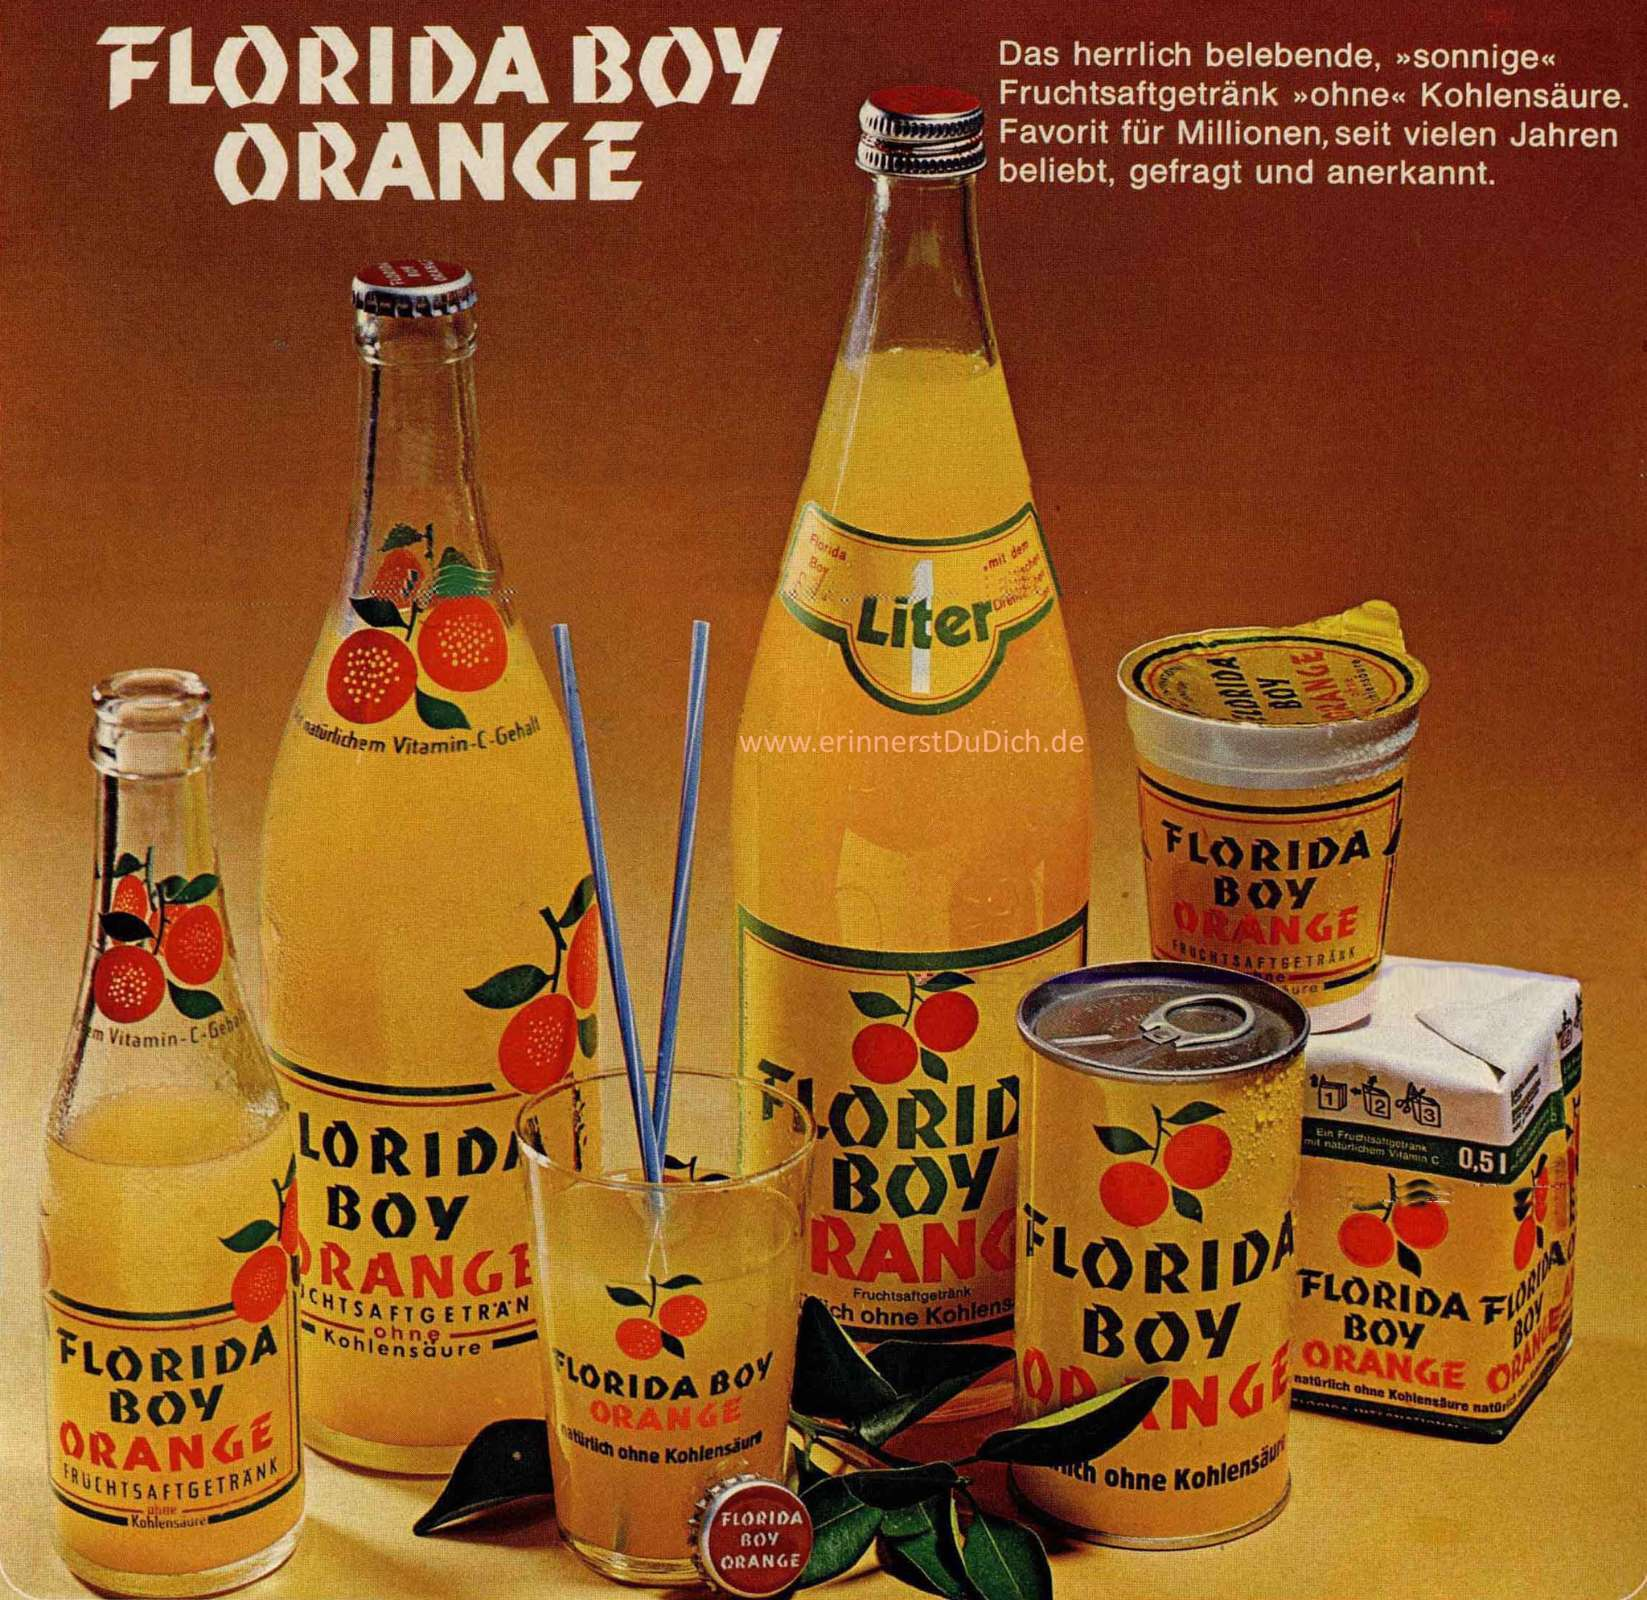 Florida Boy Orange - Erinnerst Du Dich?